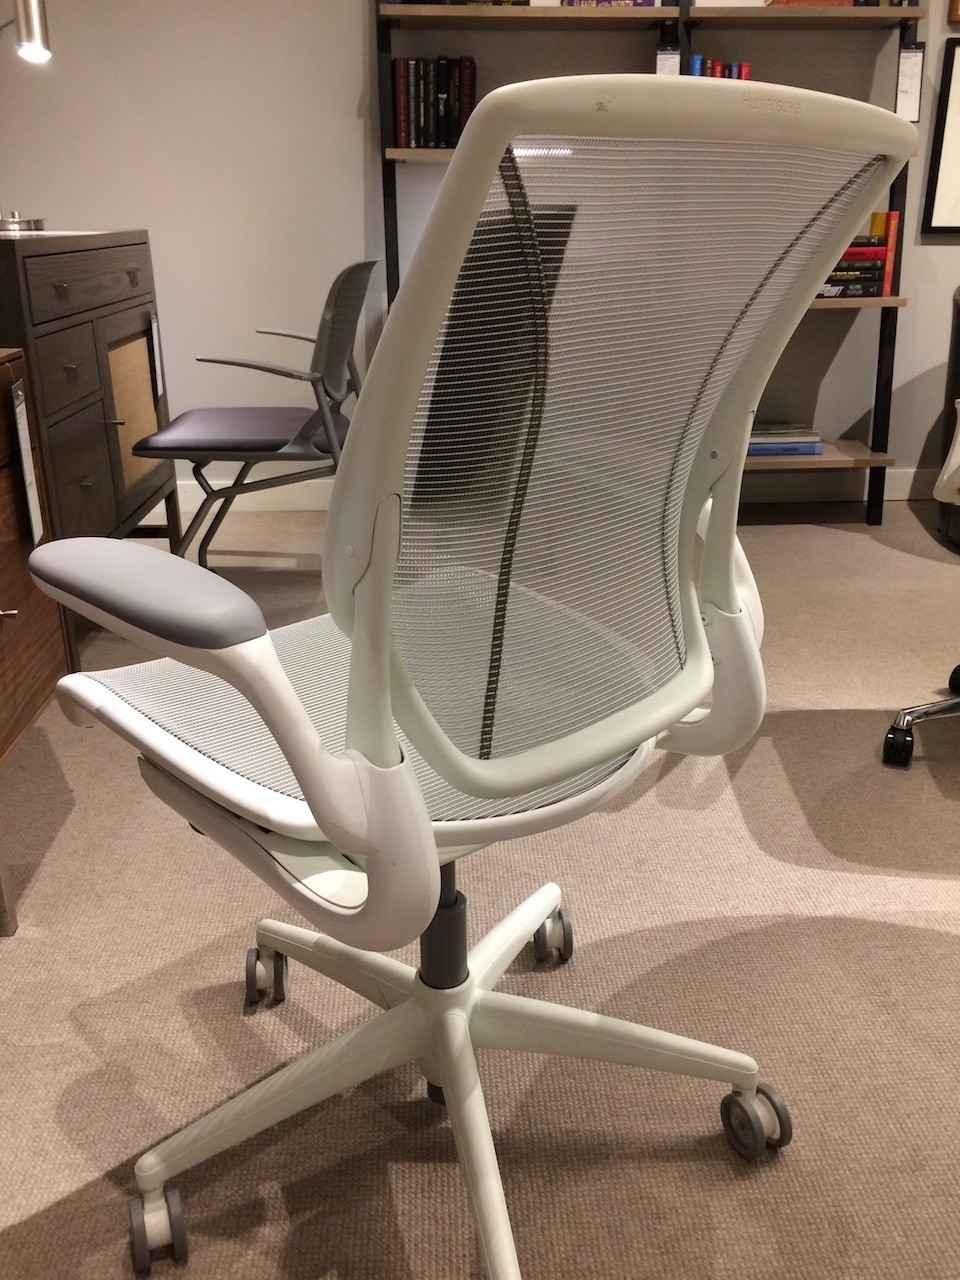 Humanscale Diffrient World Chair alternate back angle view